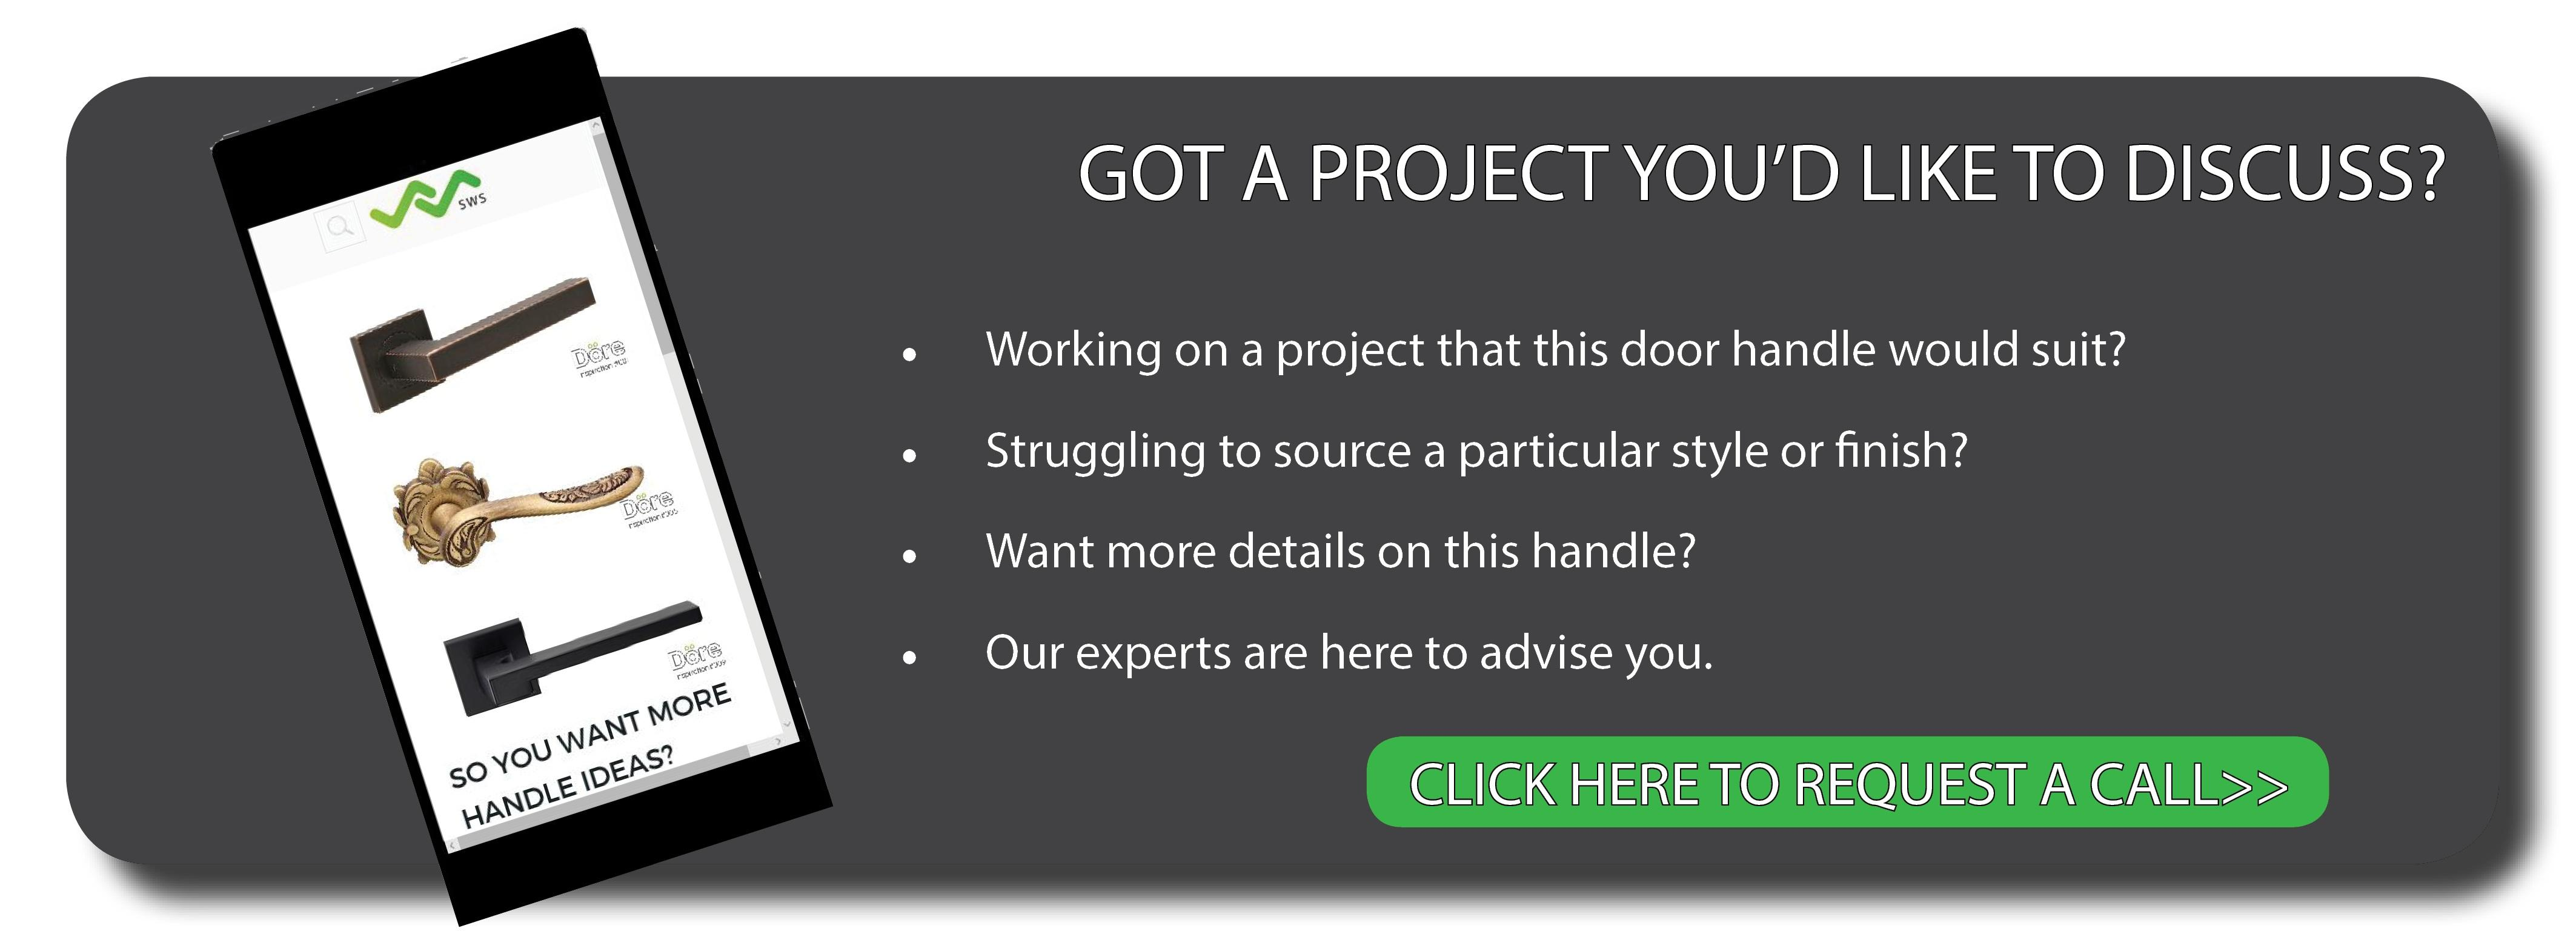 Got a project you'd like to discuss?